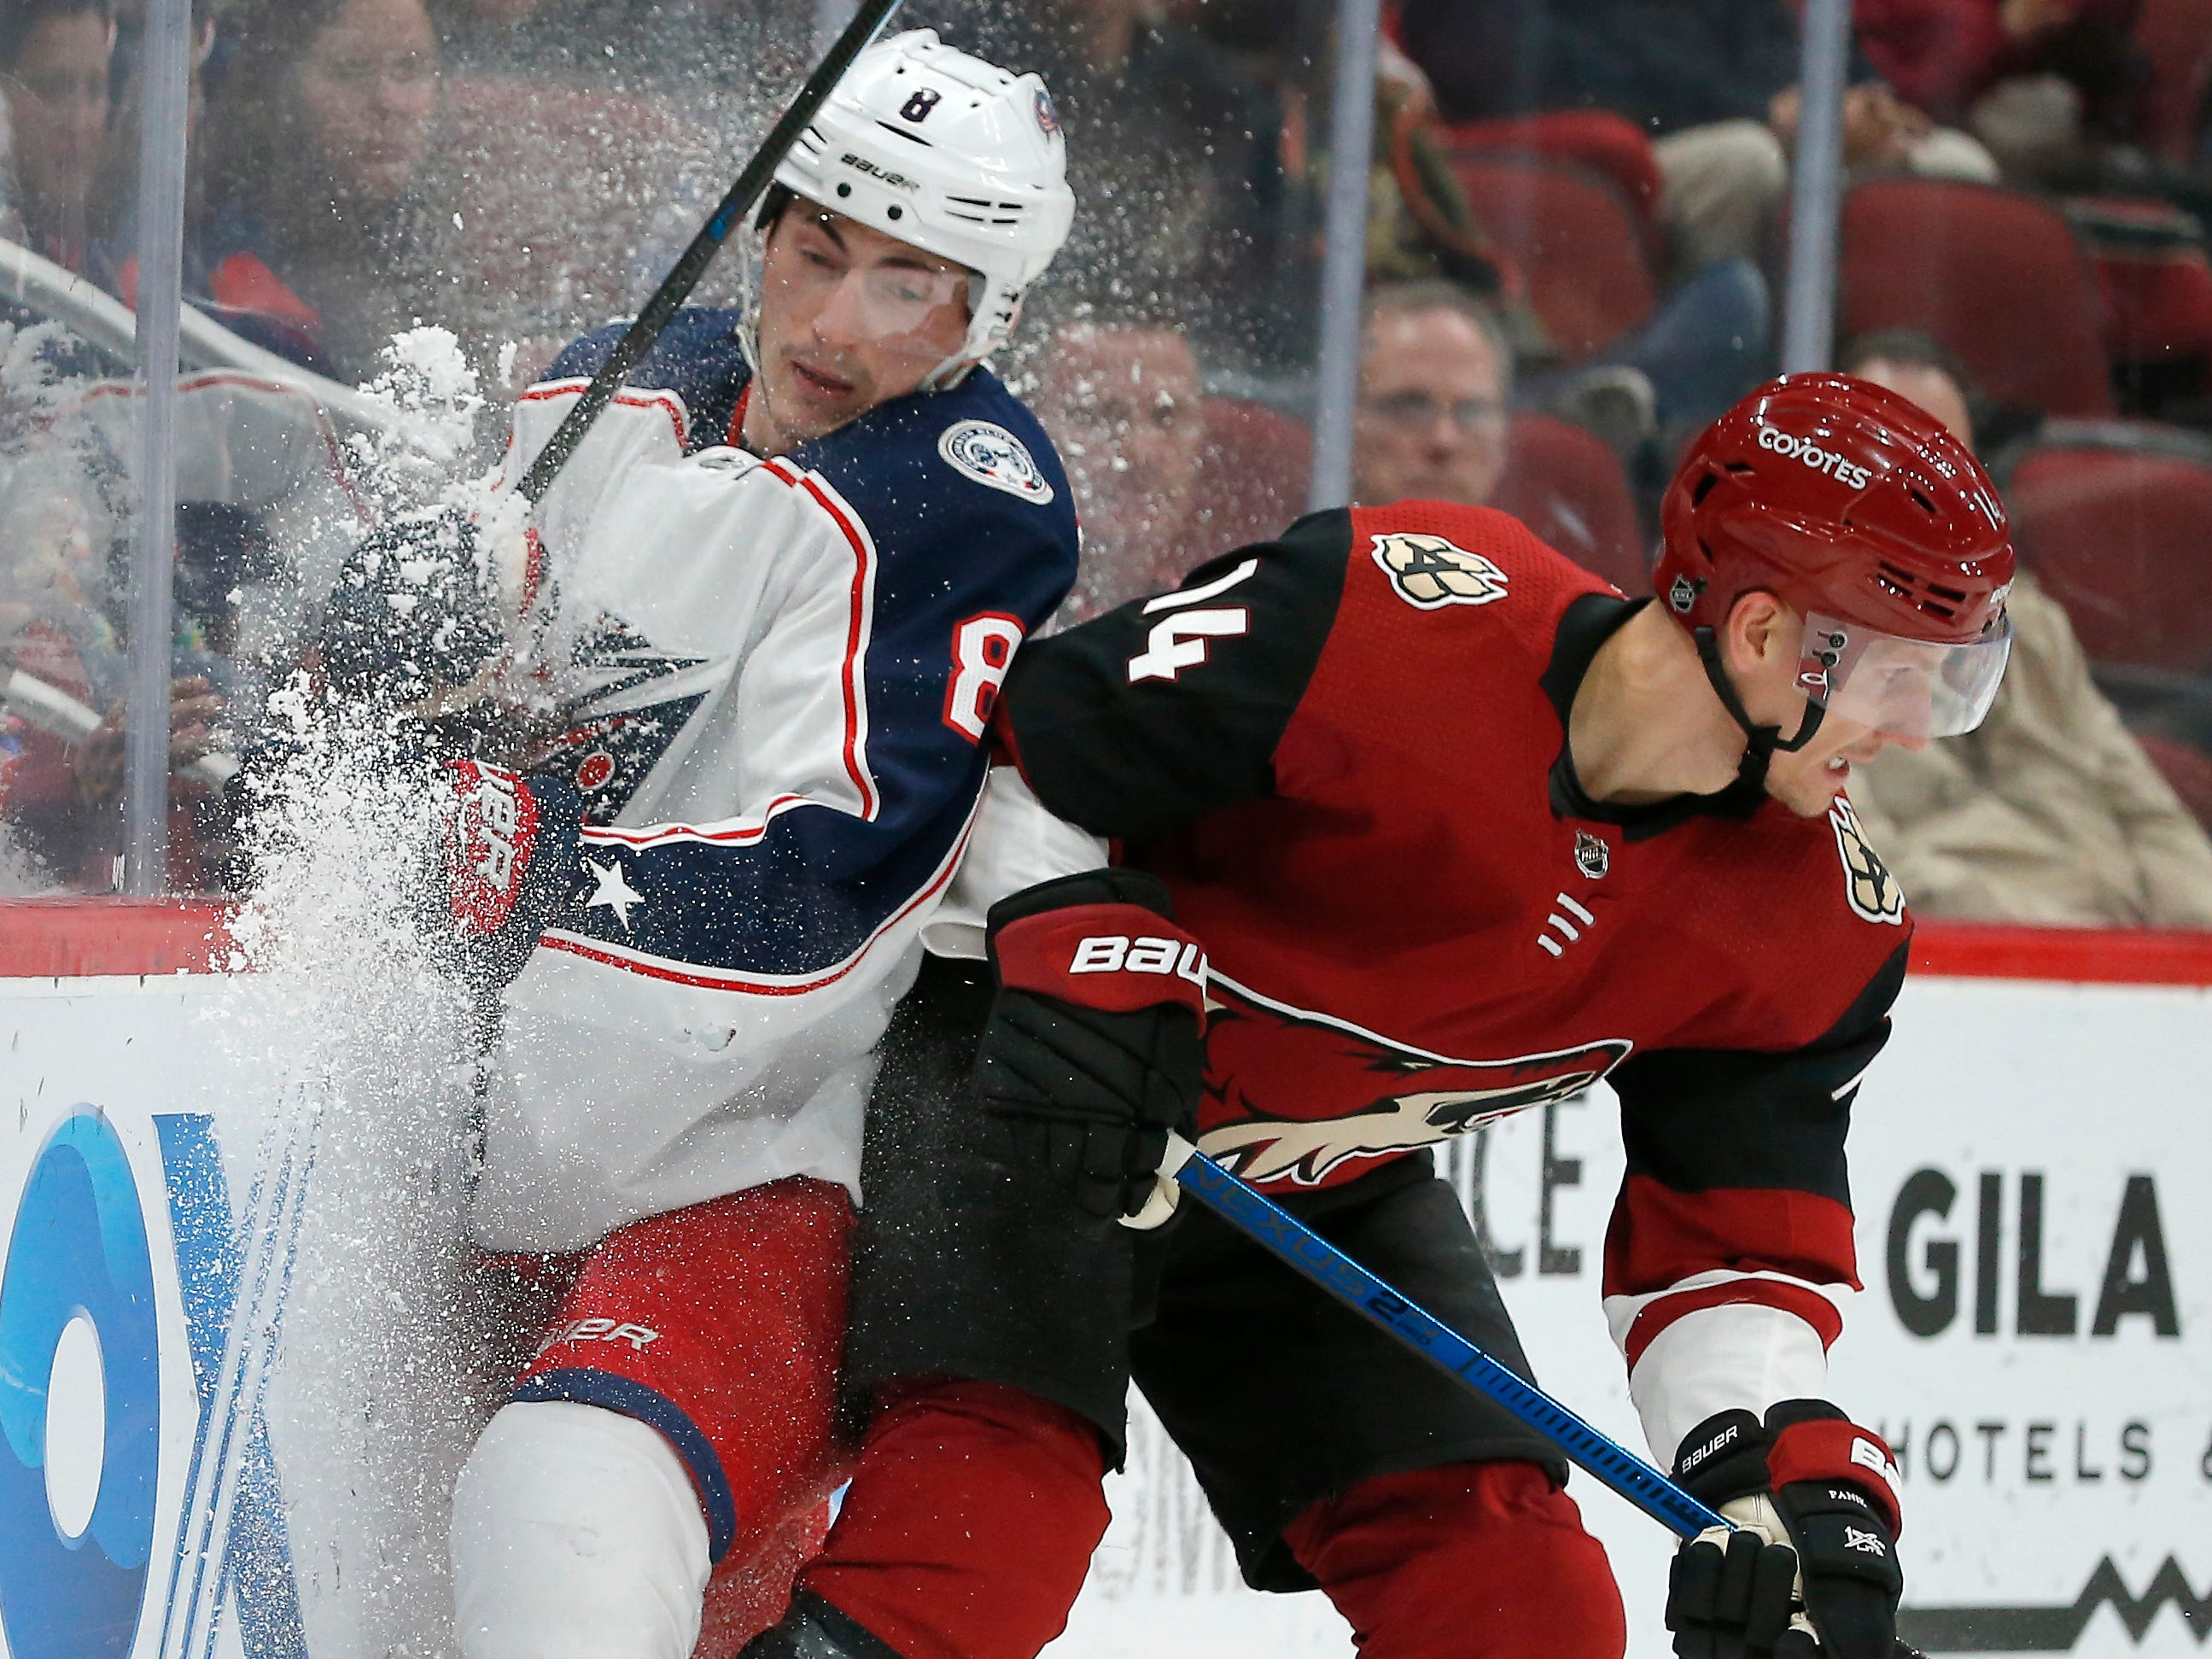 Arizona Coyotes right wing Richard Panik (14) checks Columbus Blue Jackets defenseman Zach Werenski away from the puck in the second period during an NHL hockey game, Thursday, Feb. 7, 2019, in Glendale, Ariz.